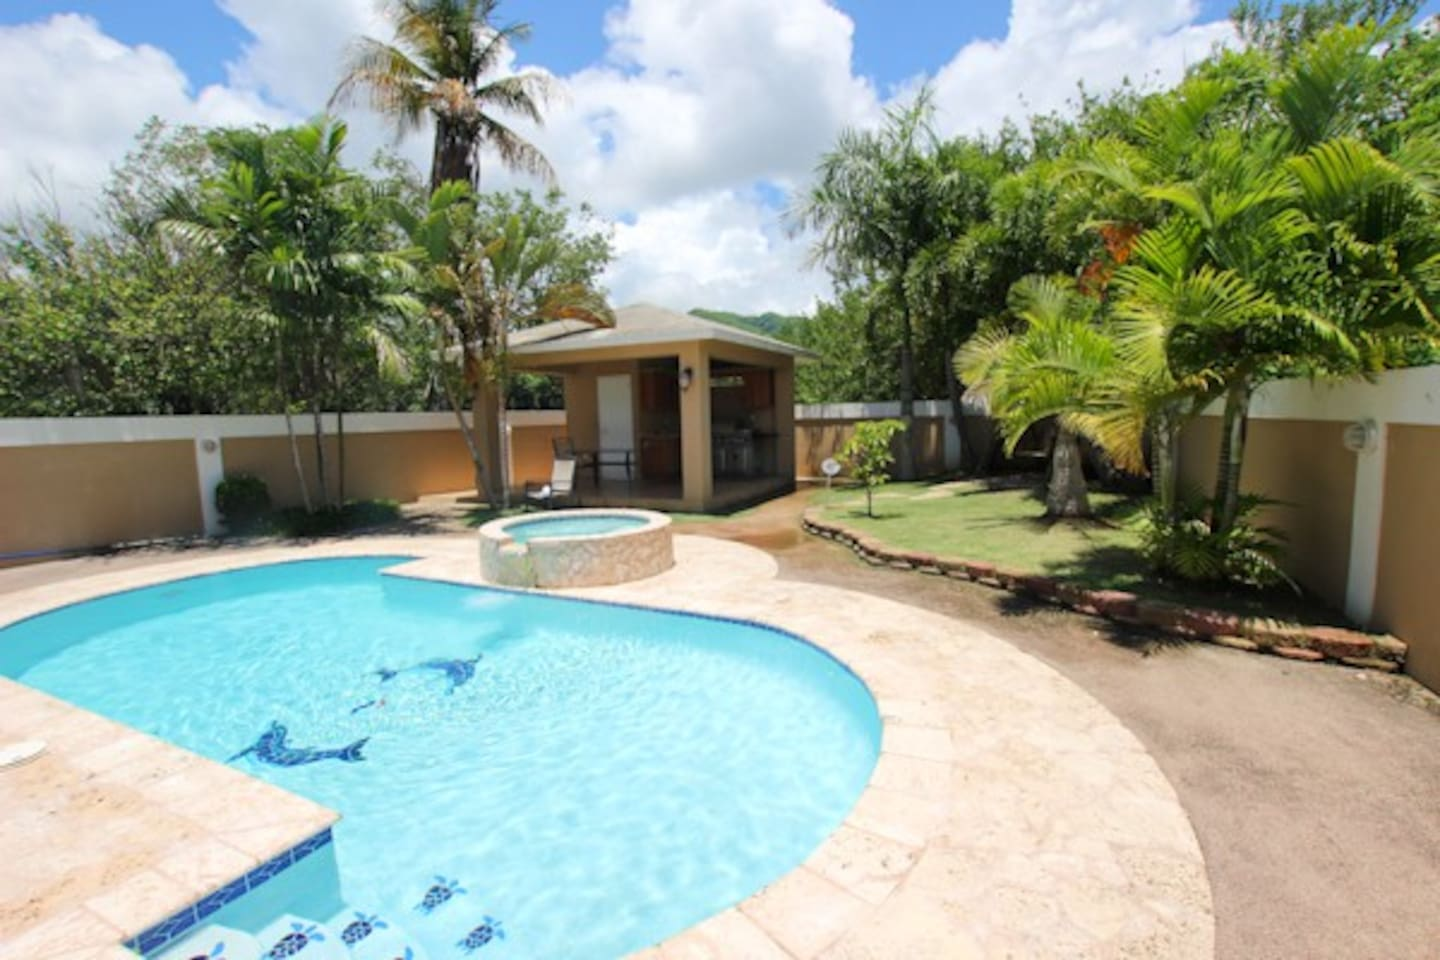 my home vacation patillas p.r. - houses for rent in patillas